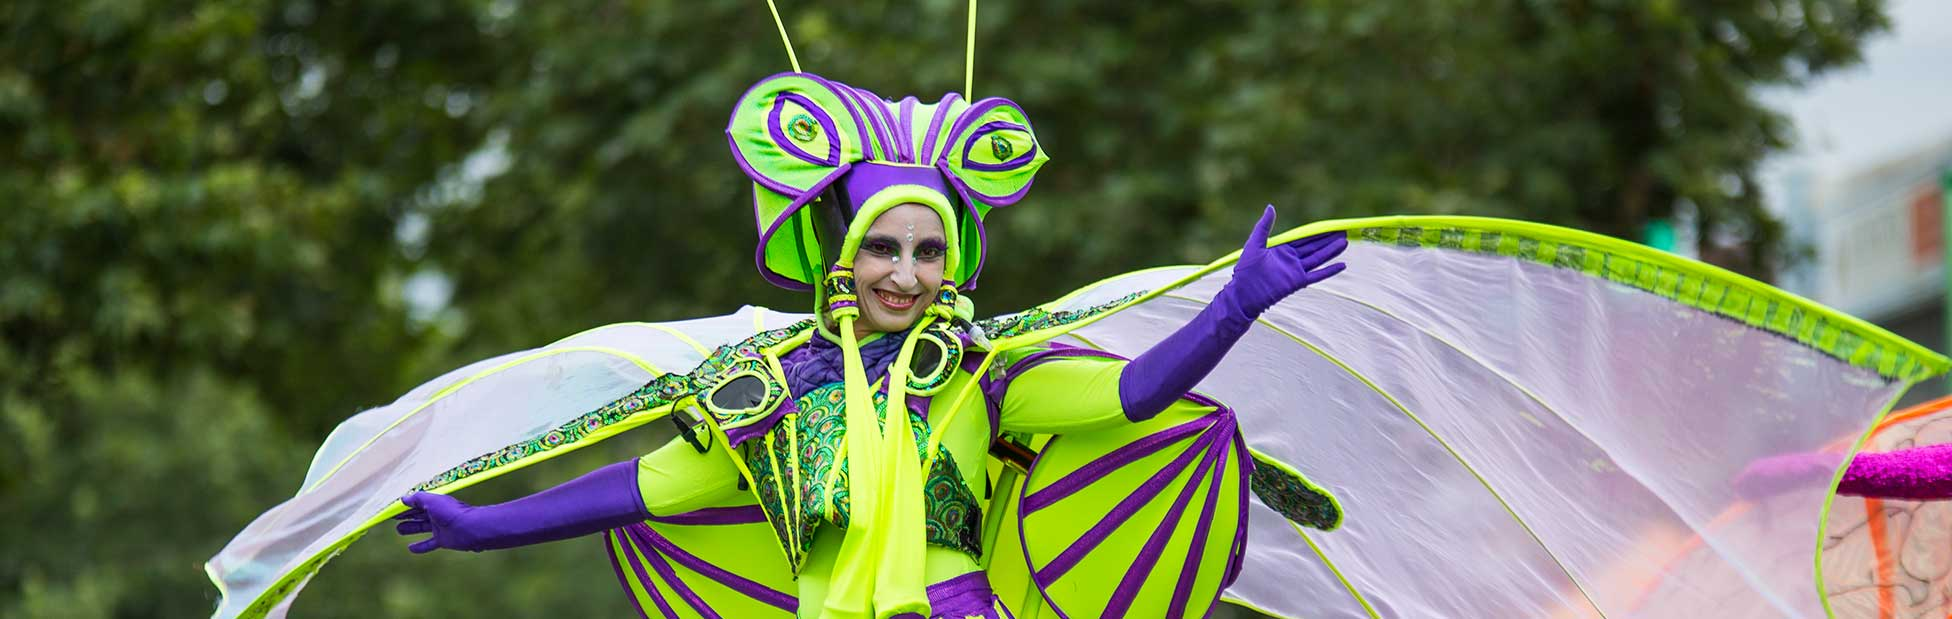 street performer walking through crowd dressed like dragonfly